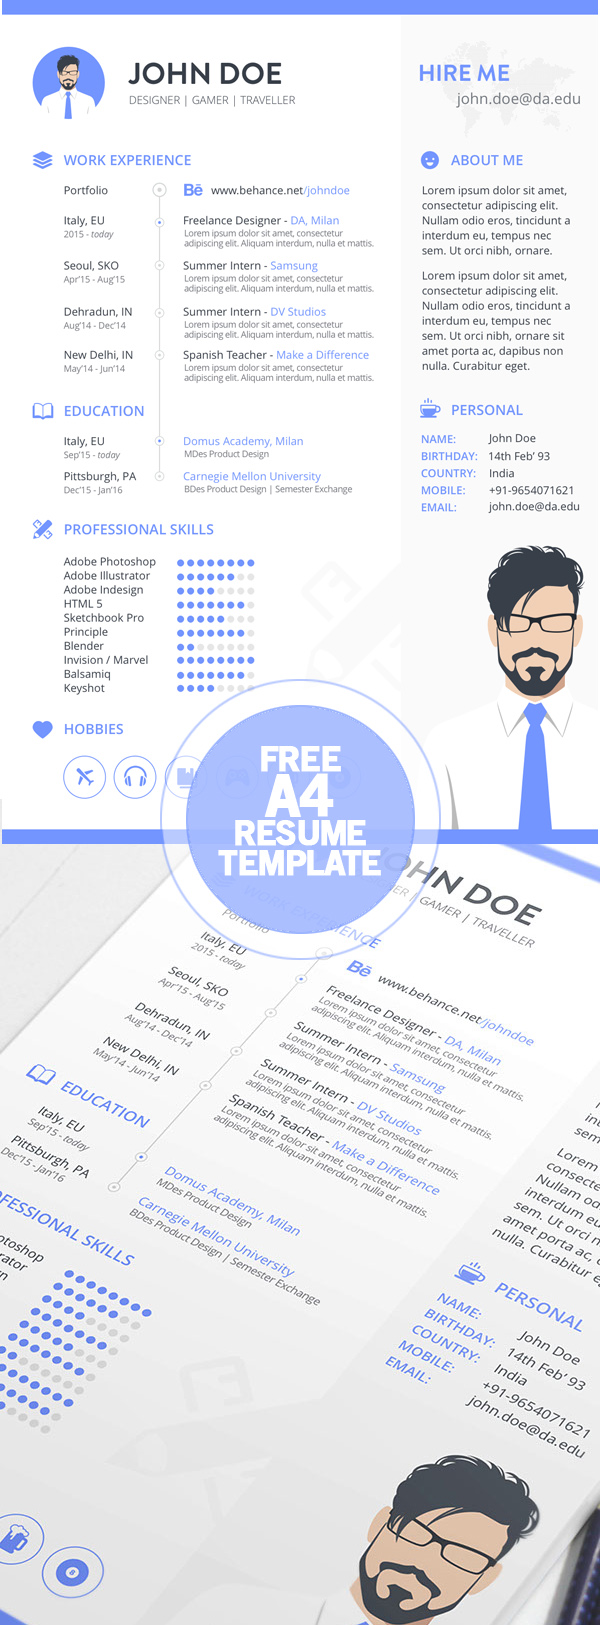 11 Free A4 Resume Template